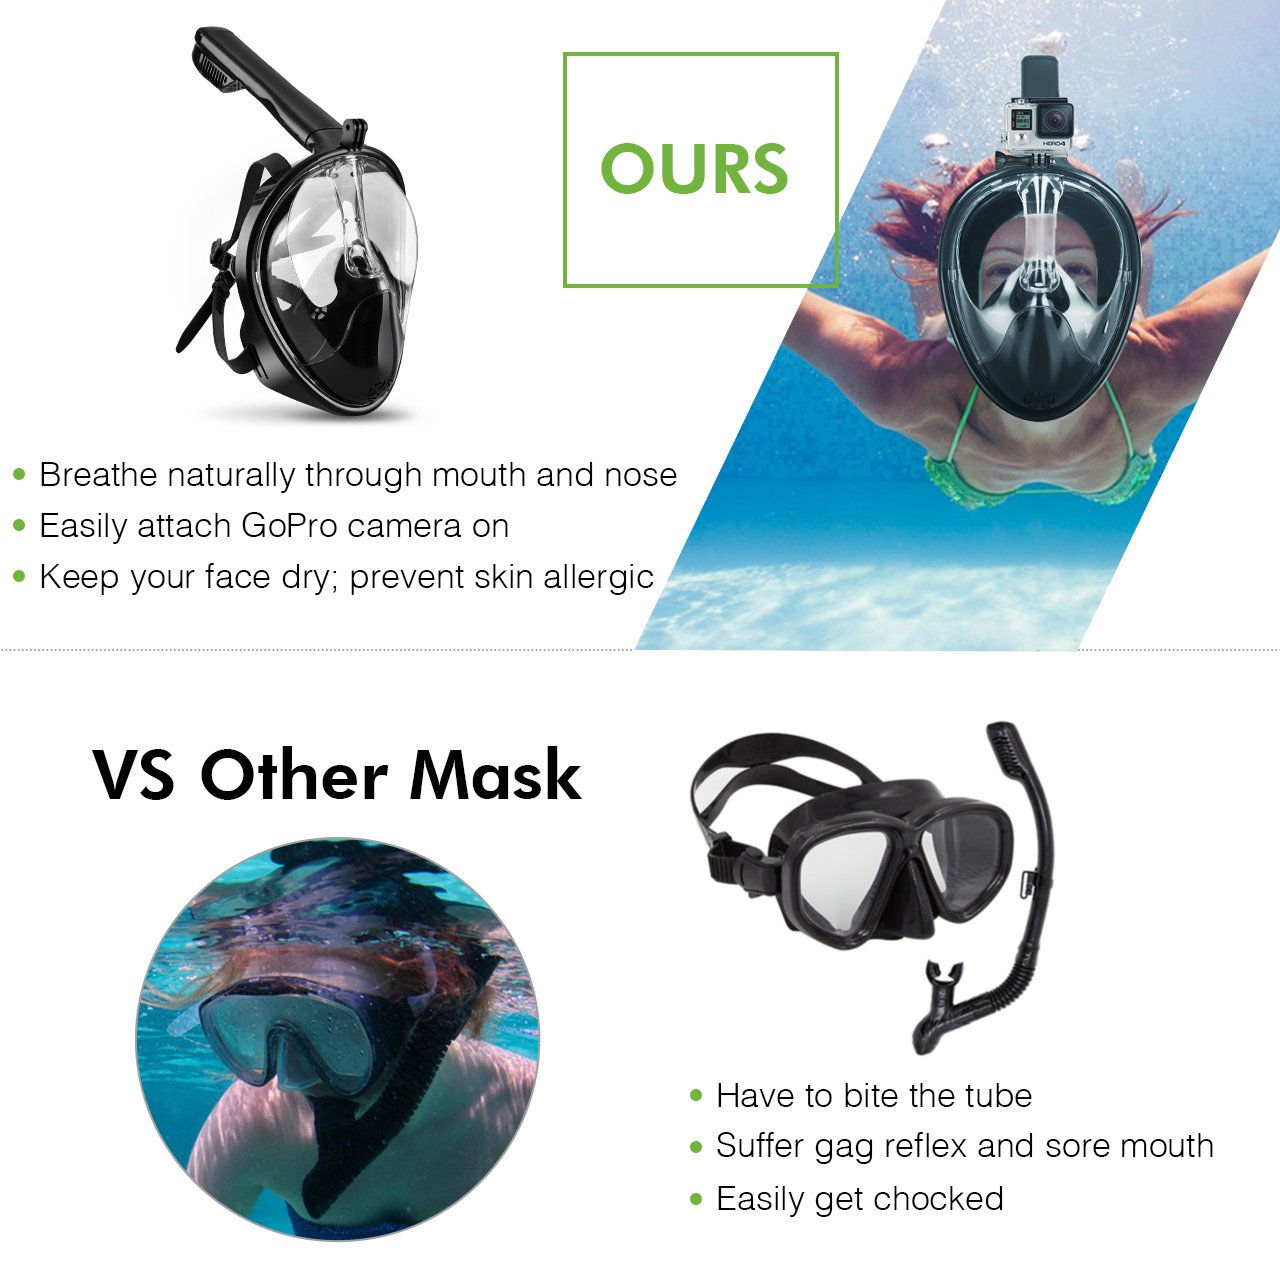 Amazon.com : OMorc Snorkel Mask 180° Seaview GoPro Compatible Diving Mask, Panoramic Full Face Design with Anti-Fog and Anti-Leak Technology, See More Water ...